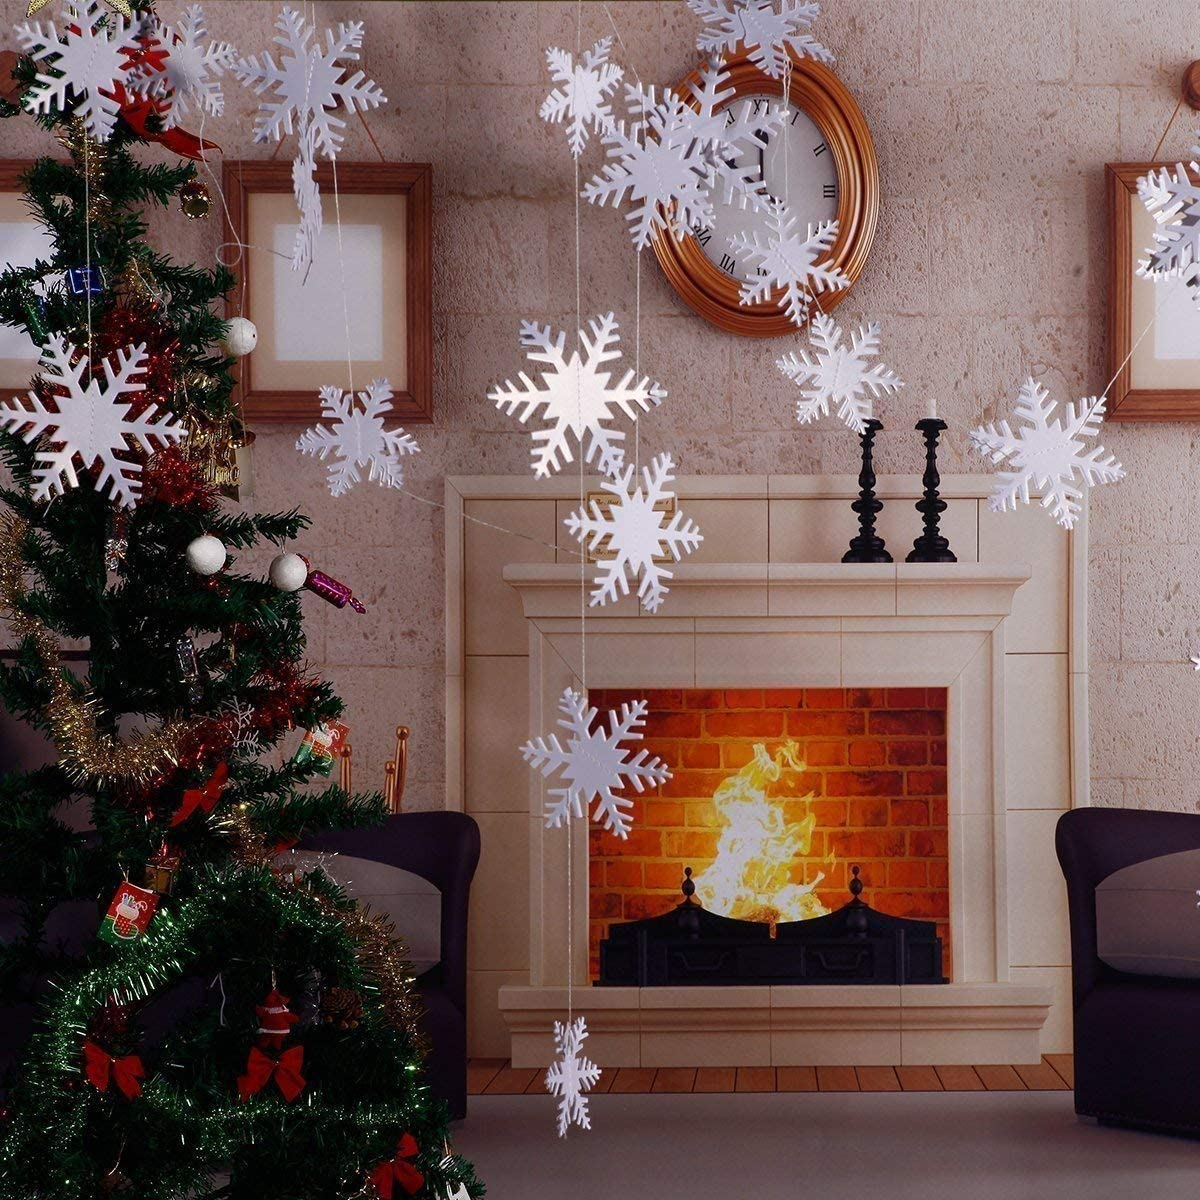 5//set 3m White Paper Snowflake Bunting Garland Christmas Home Ornaments